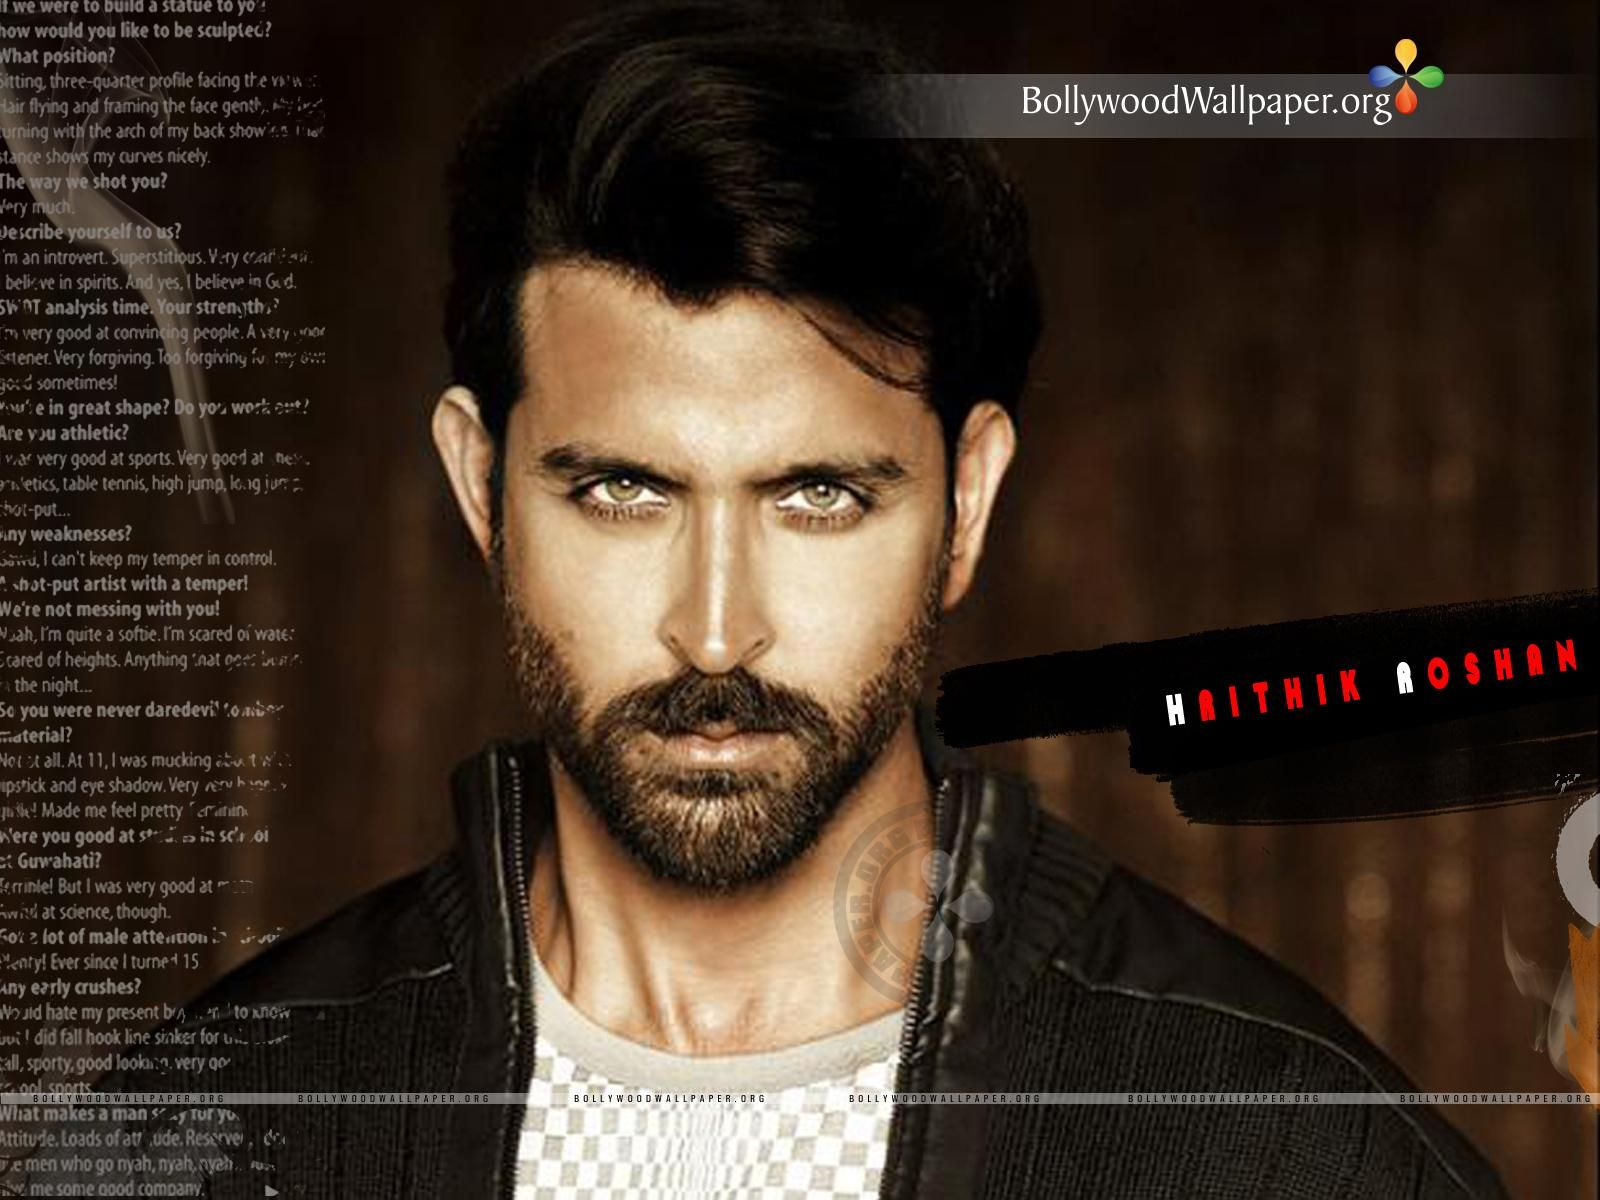 Hritik roshan latest wallpapers Hrithik Roshan Wallpaper 012